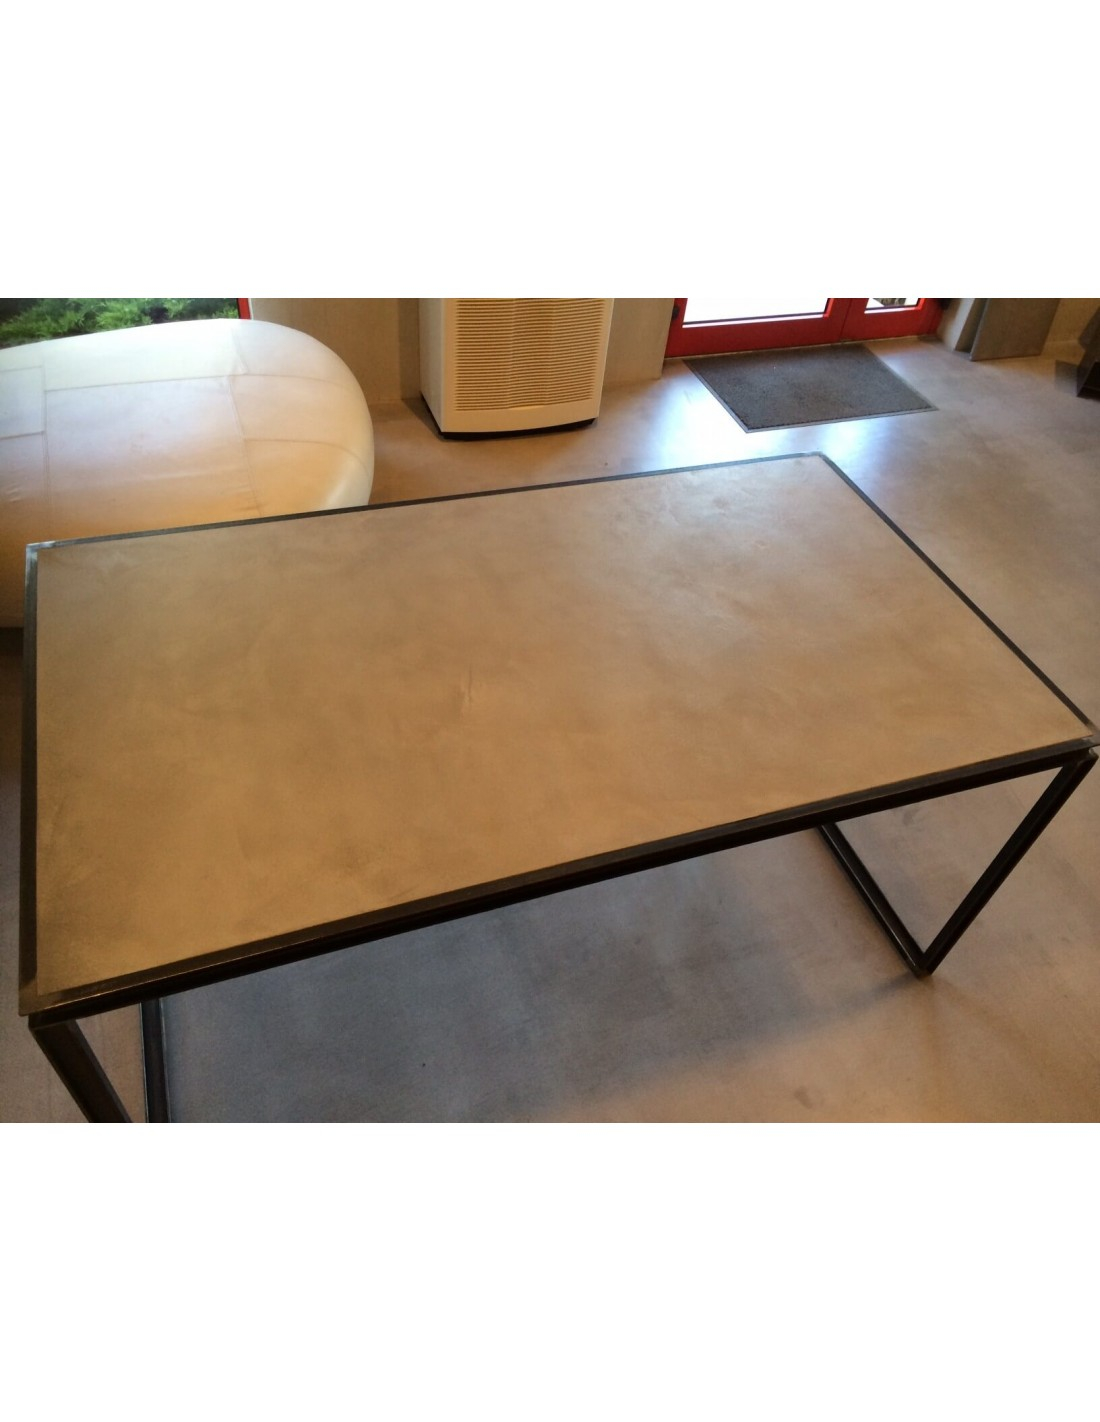 table beton cire exterieur elegant table basse en bton with table beton cire exterieur. Black Bedroom Furniture Sets. Home Design Ideas